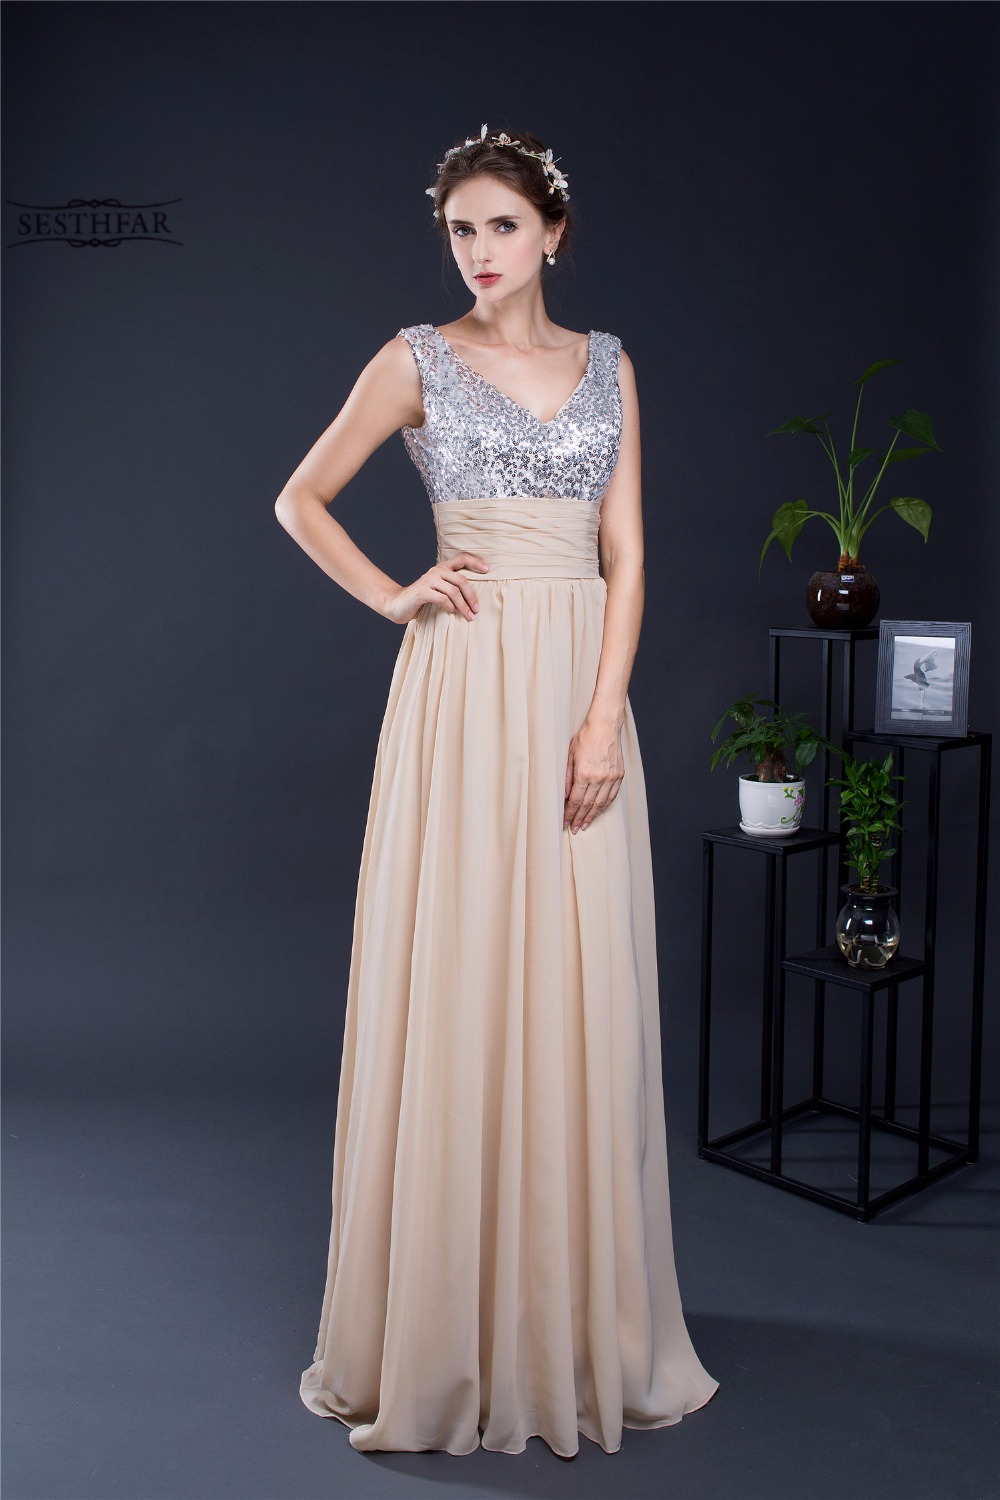 Compare prices on prom style bridesmaid dresses online shopping sesthfar 2017 new chiffon a line strapless sequins long bridesmaid dresses women prom dress style ombrellifo Images